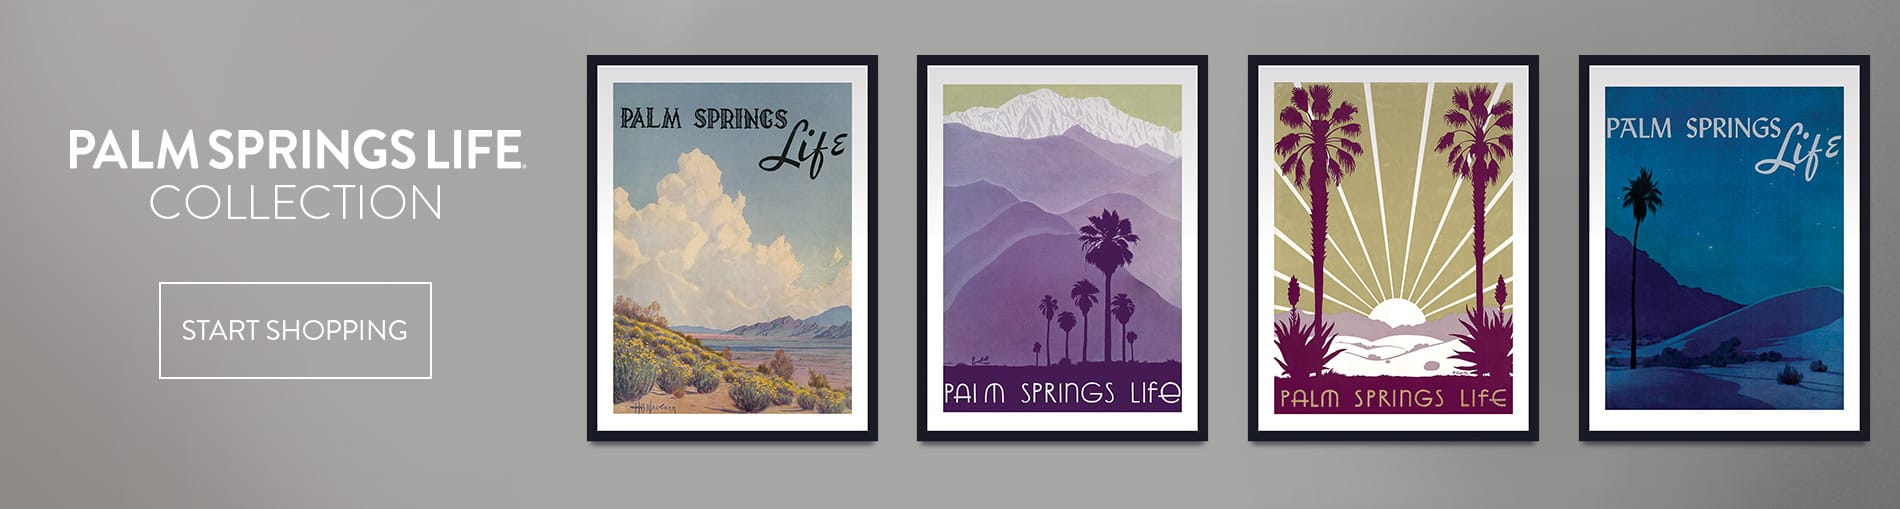 Shop Palm Springs Life - Store